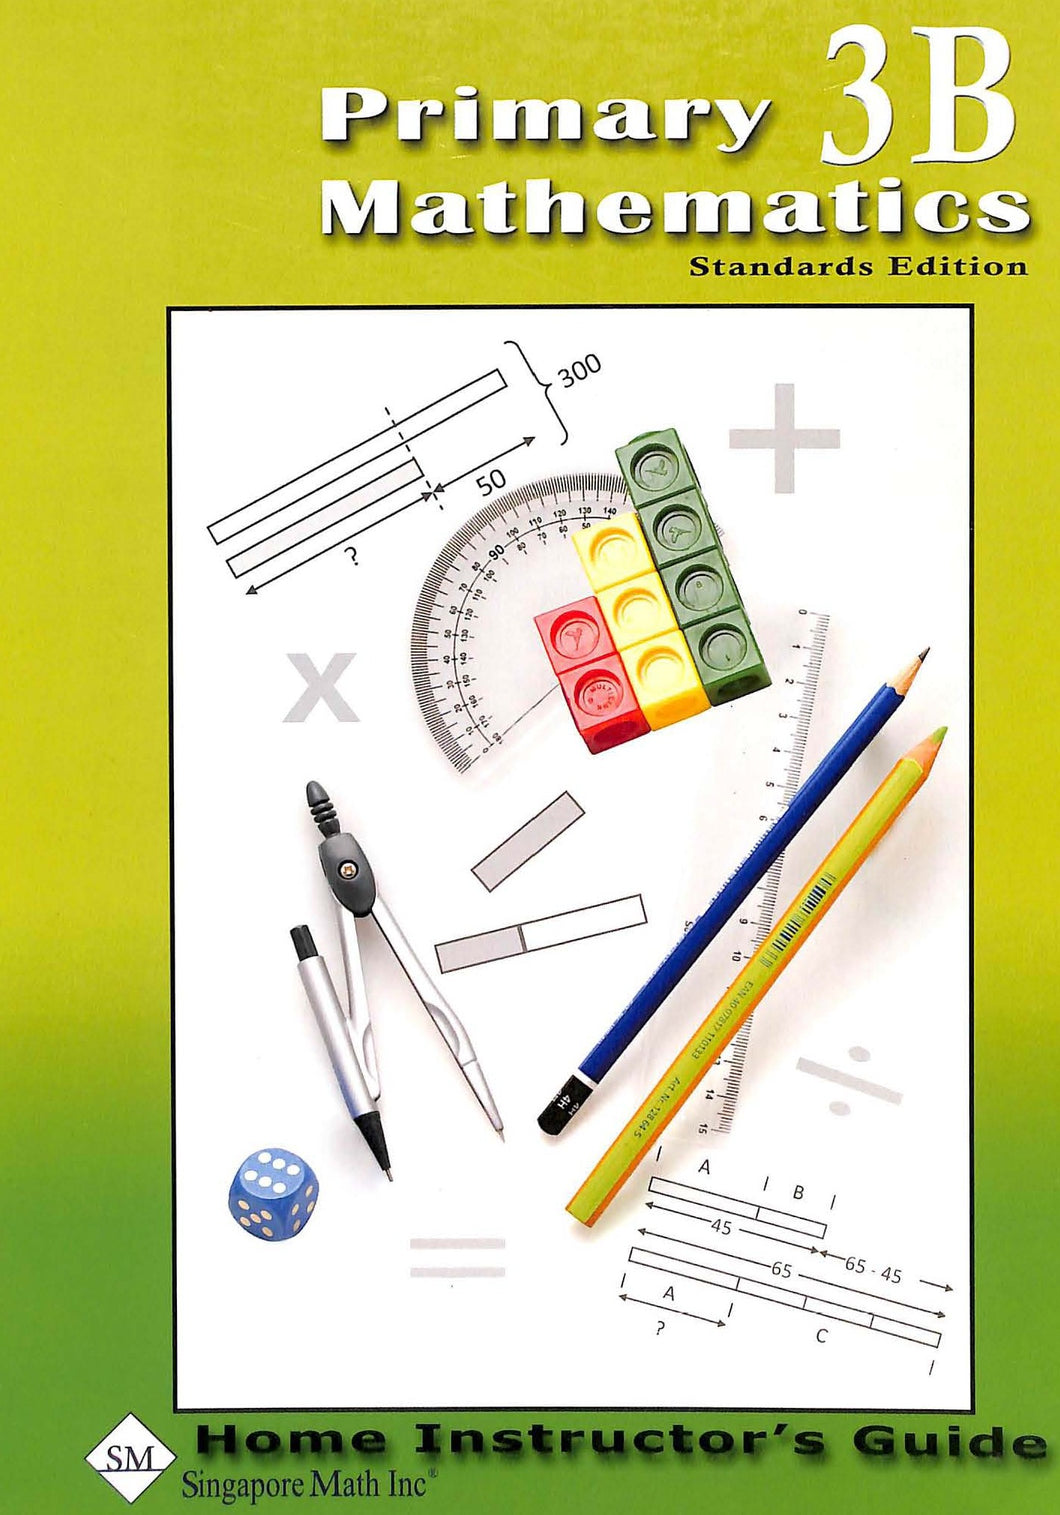 Primary Mathematics Home Instructor's Guide 3B